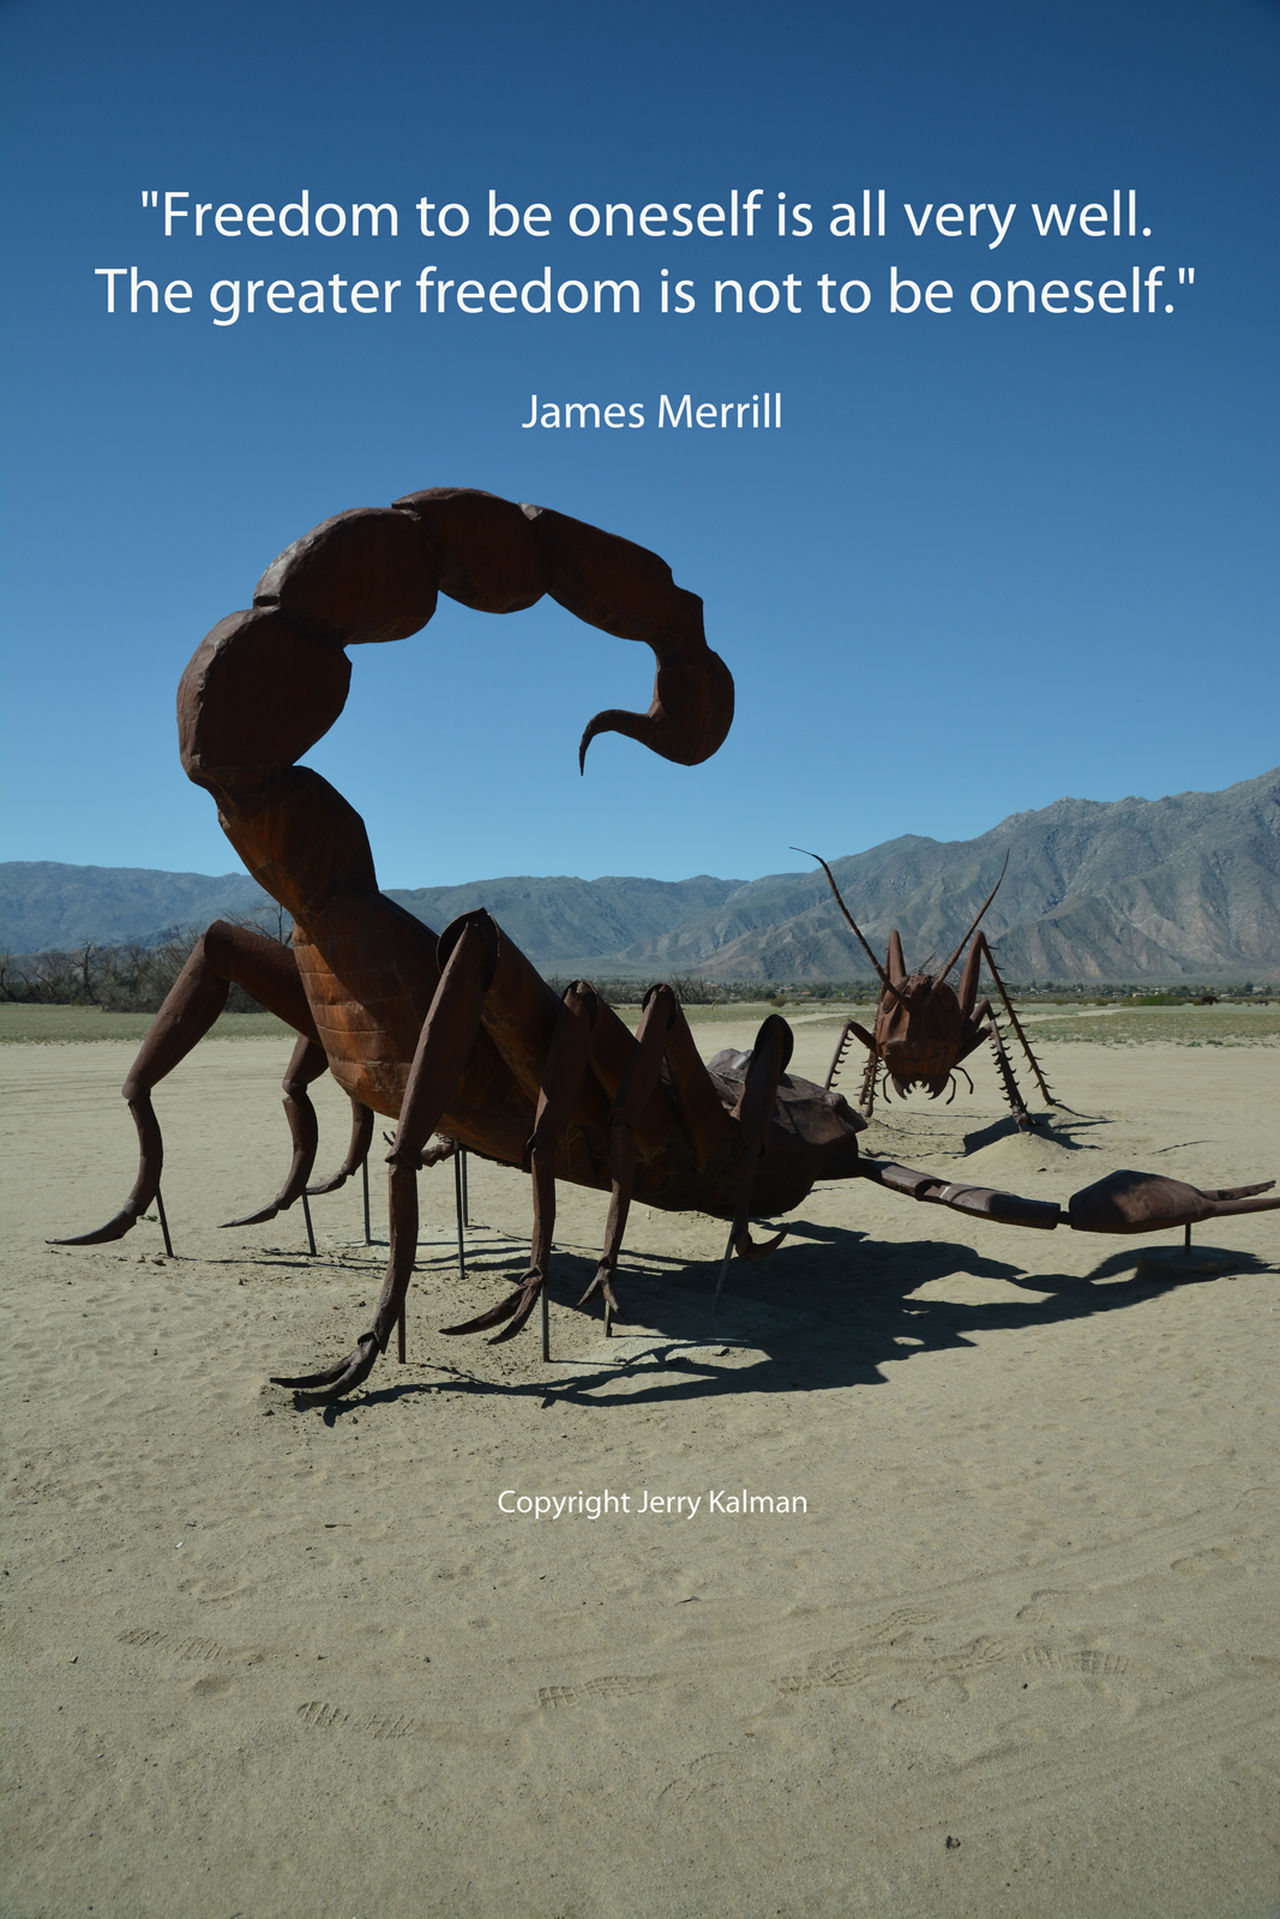 Monster-sized metal sculptures by #Breceda in the desert near #BorregoSprings and a quote by #JamesMerrill on #FrankSinatra's birthday. If this #quotograph speaks to you, feel free to share it with others. Anza Borrego State Park B Berceda Borrego  Frank Gehry James Merrill Scorpion Scorpions Sculpture